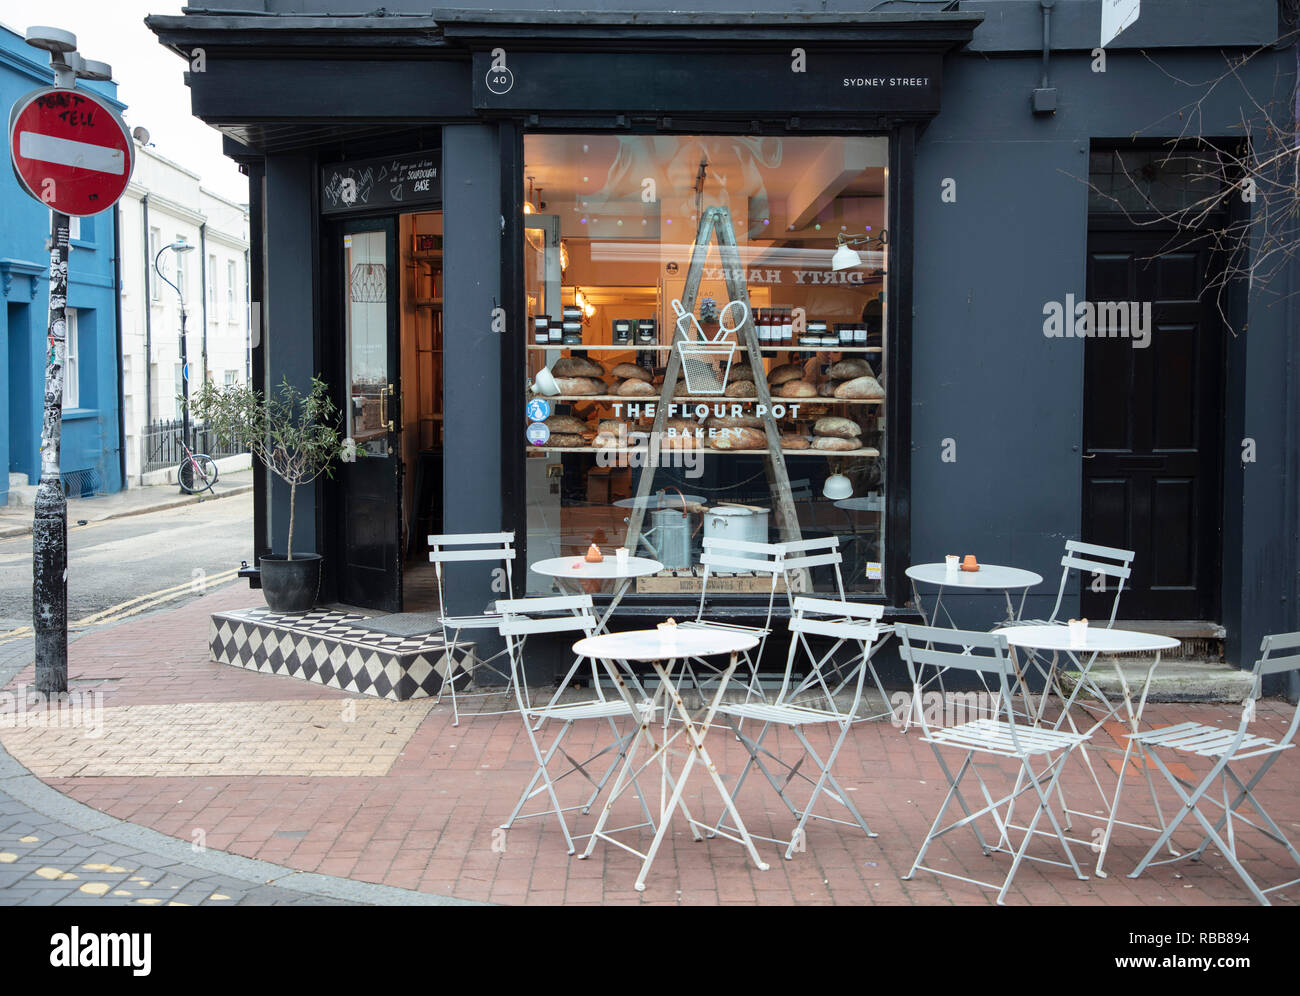 Artisan Baker Shop in Brighton North Laine with Pavement Tables and Chairs - Stock Image